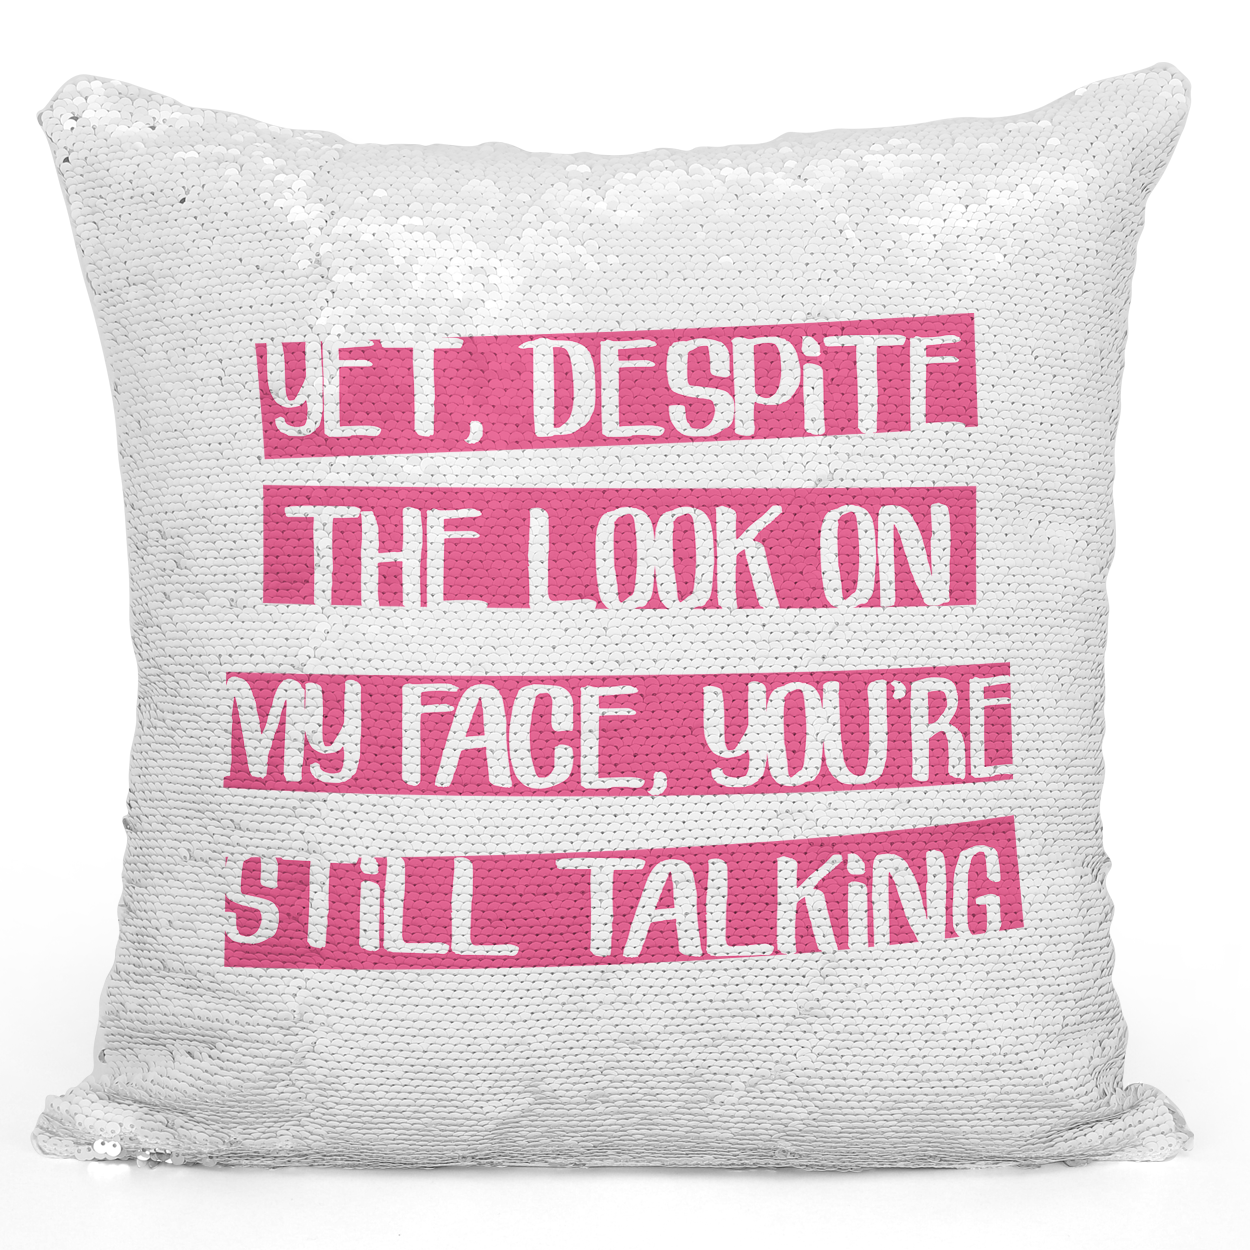 16x16 inch Sequin Throw Pillow Magic Flip Pillow Despite The Look On My Face You Are Still Talkiing Sarcastic Annoyed Pillow For Friends And Couples Loud Universe